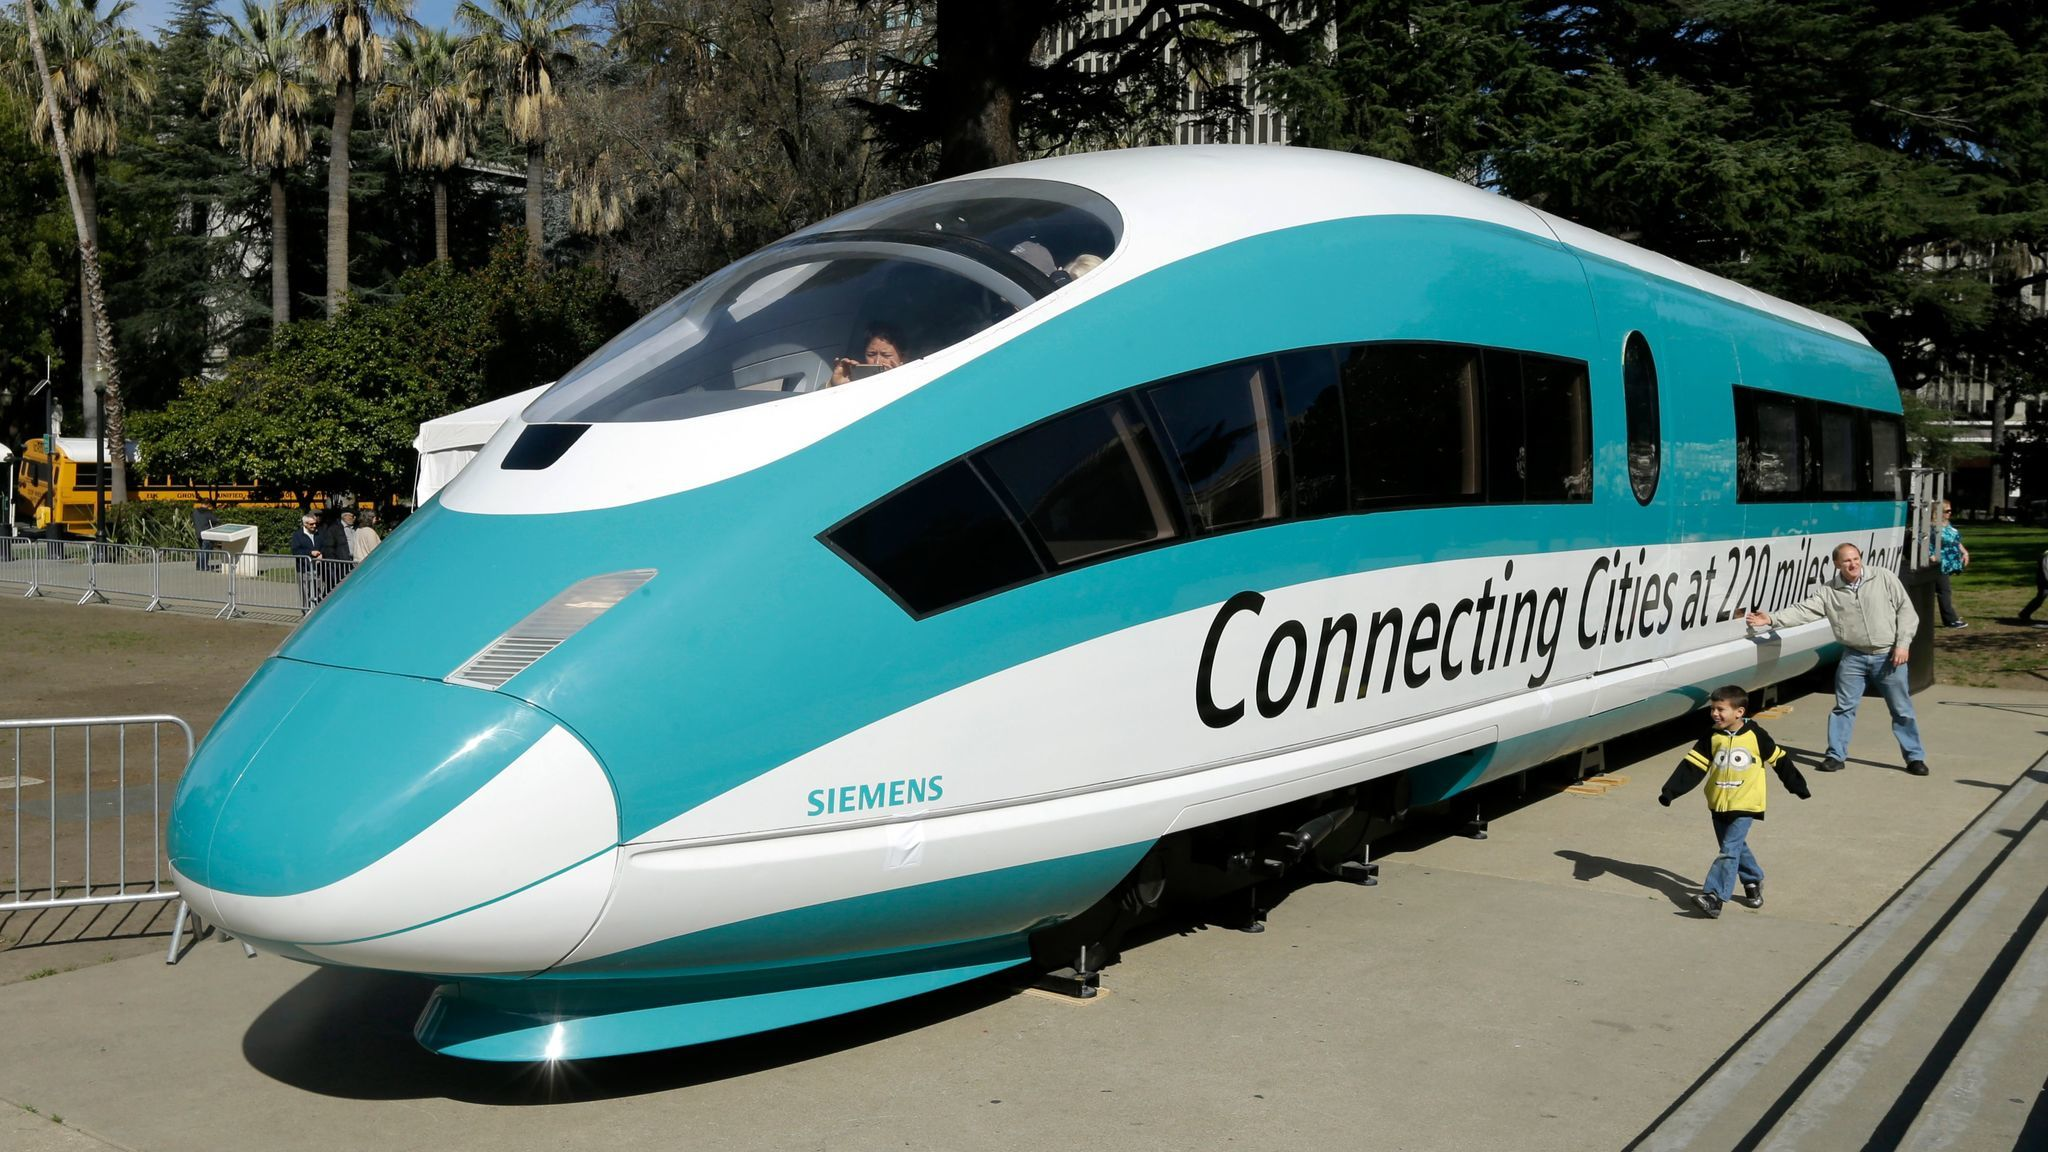 California's high-speed rail project, which would send bullet trains through the east San Fernando Valley, has been controversial in Council District 7. Above, a full-size mockup of a bullet train.